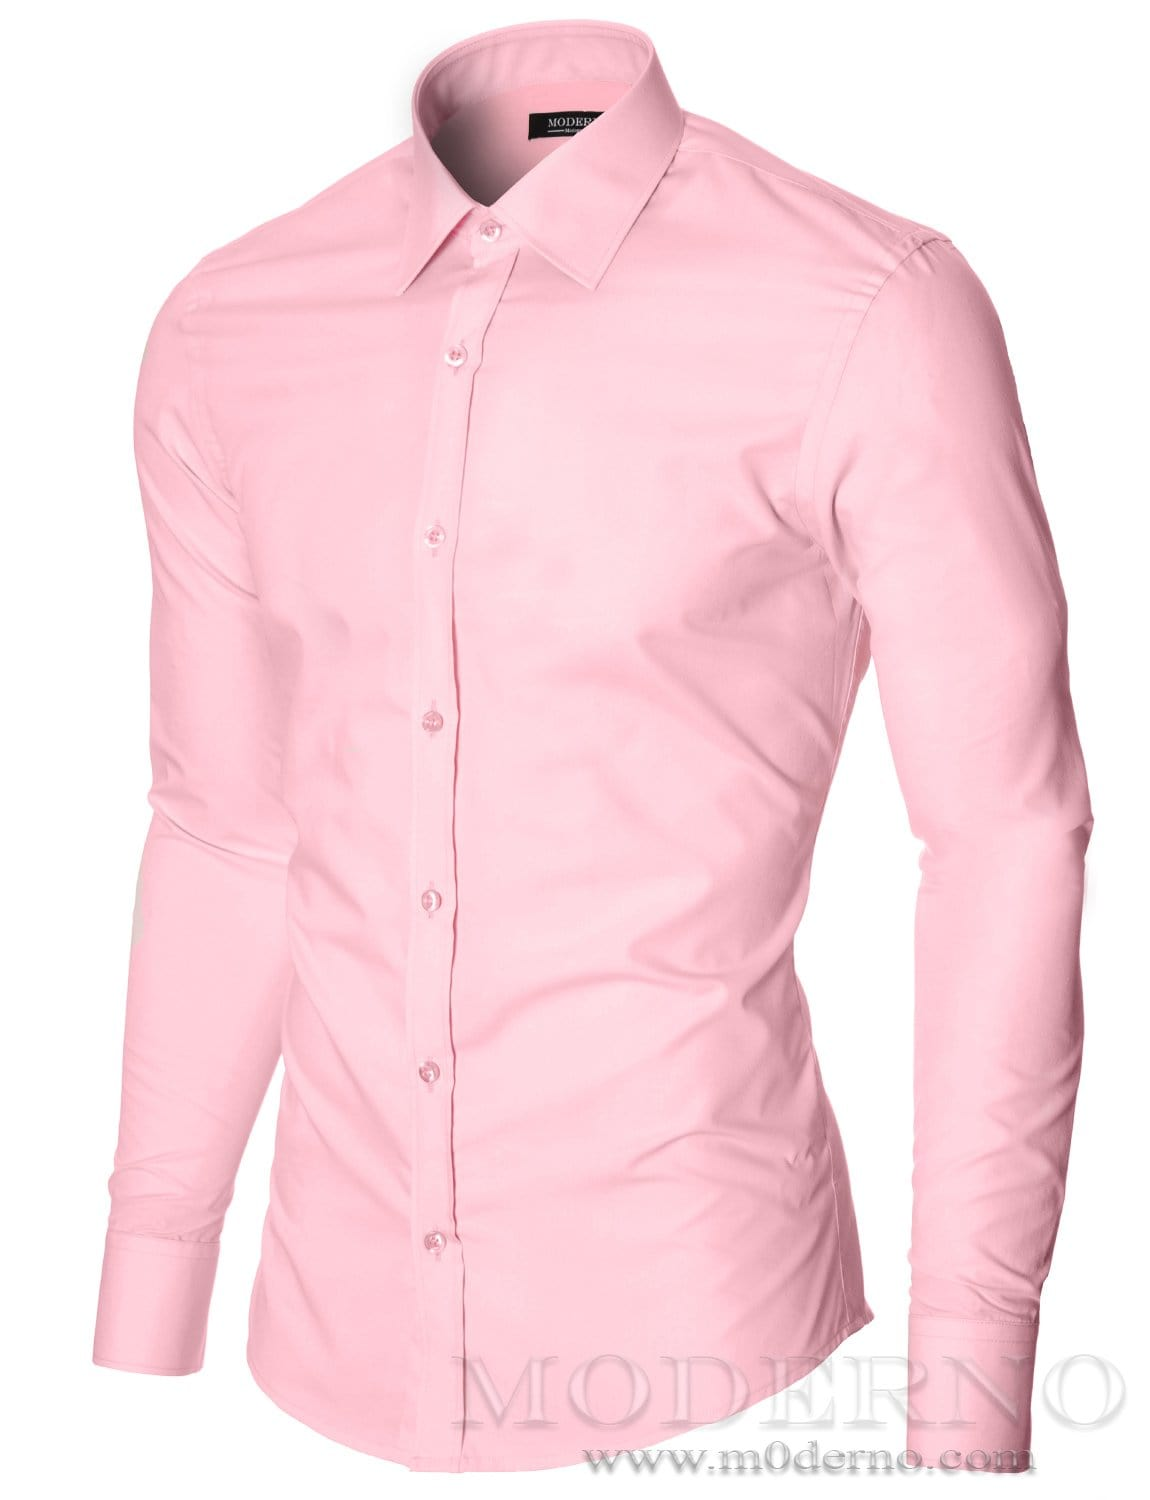 Mens Pink Dress Shirt With Classic Collar By Moderno